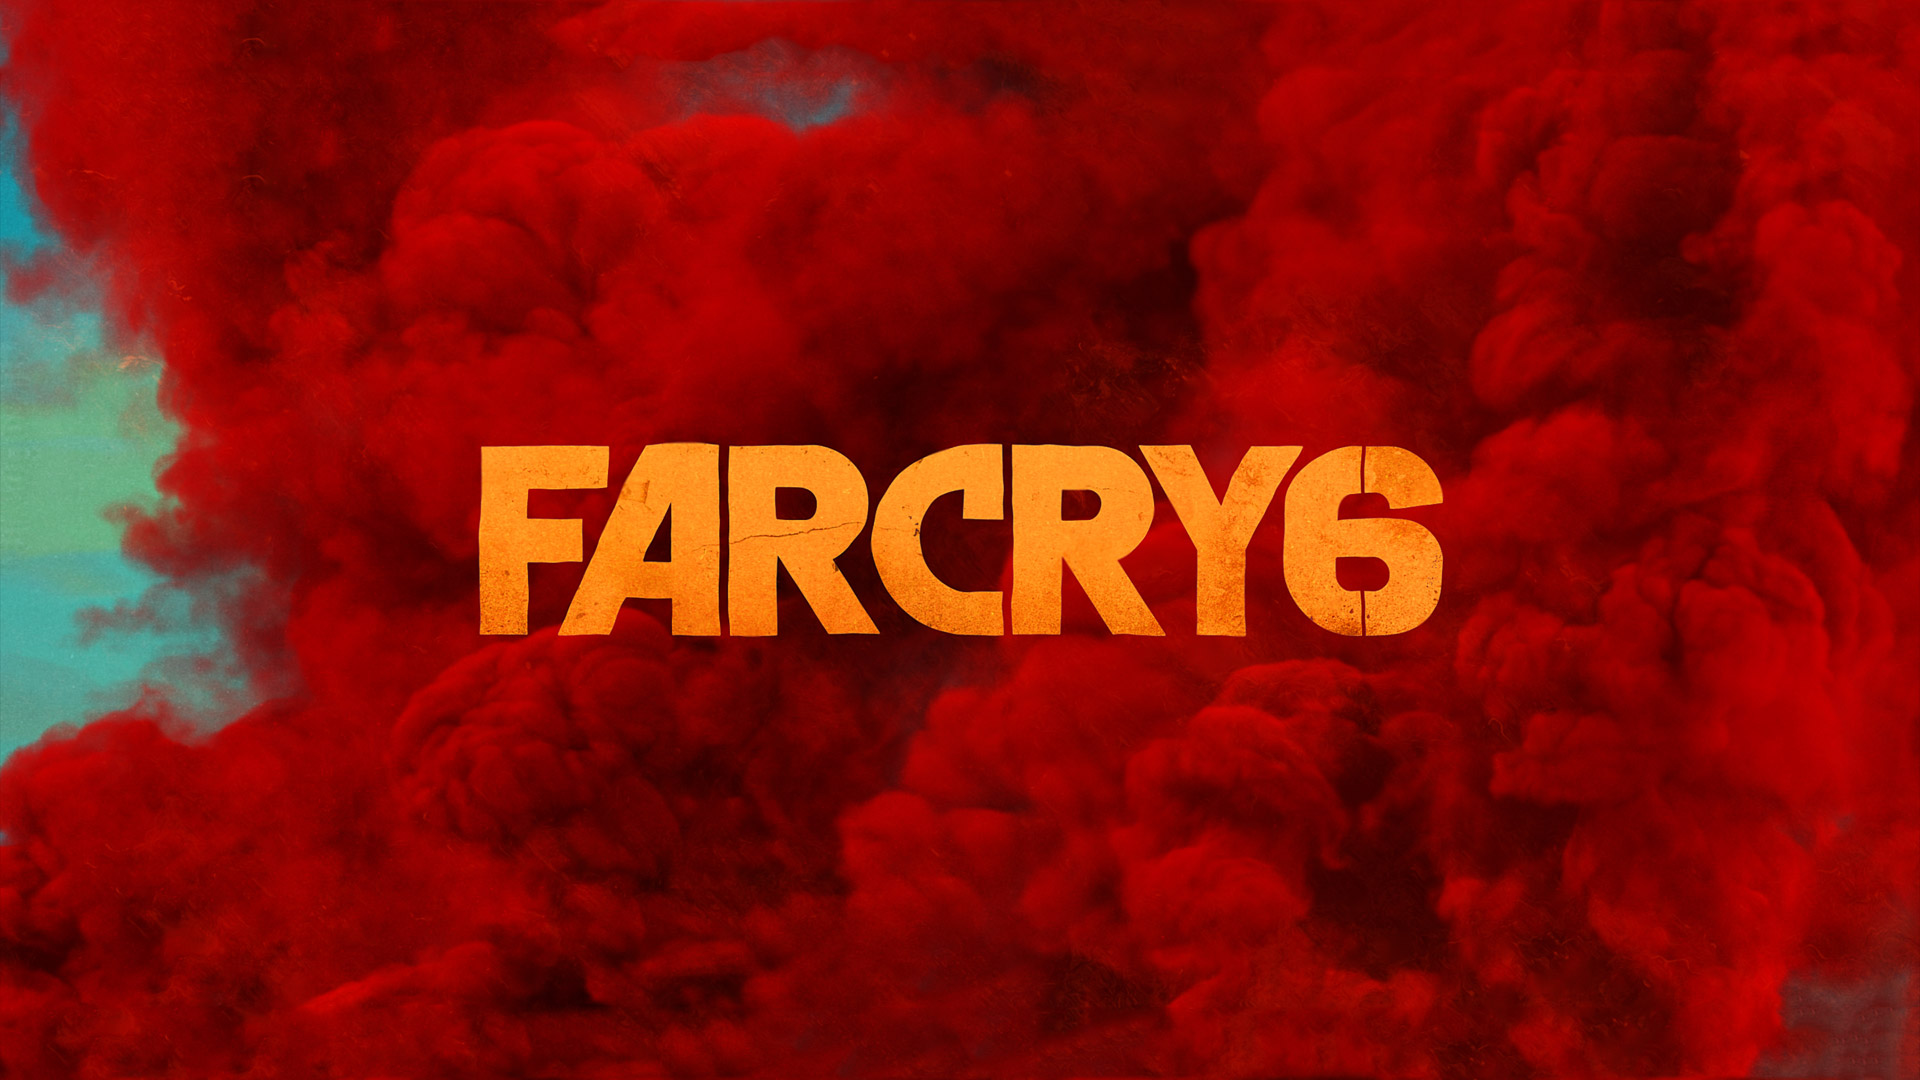 Free Far Cry 6 Wallpaper in 1920x1080